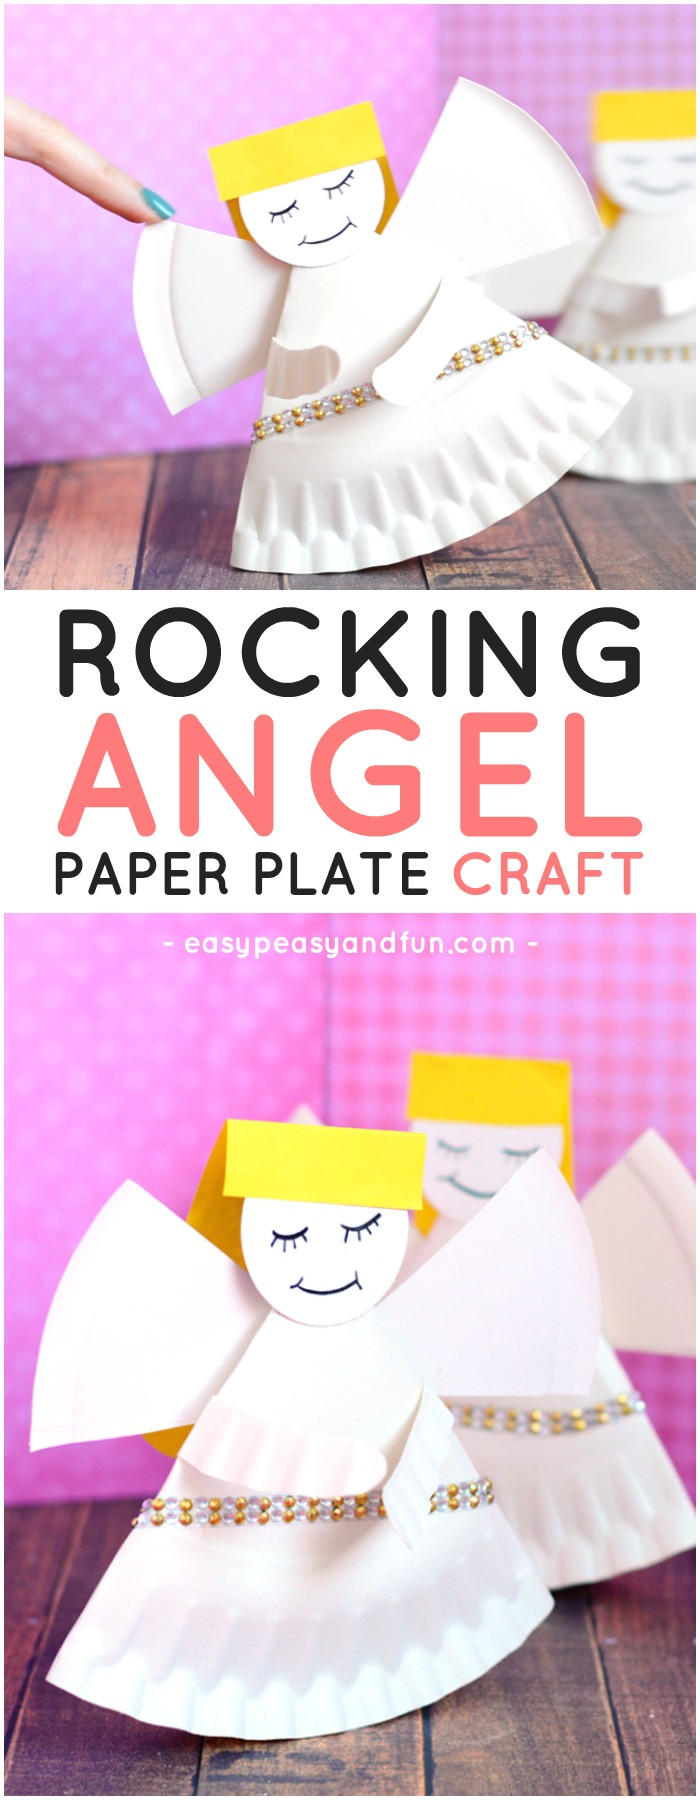 Rocking Paper Plate Angel Craft for Kids. Simple paper plate craft idea for kids to make.